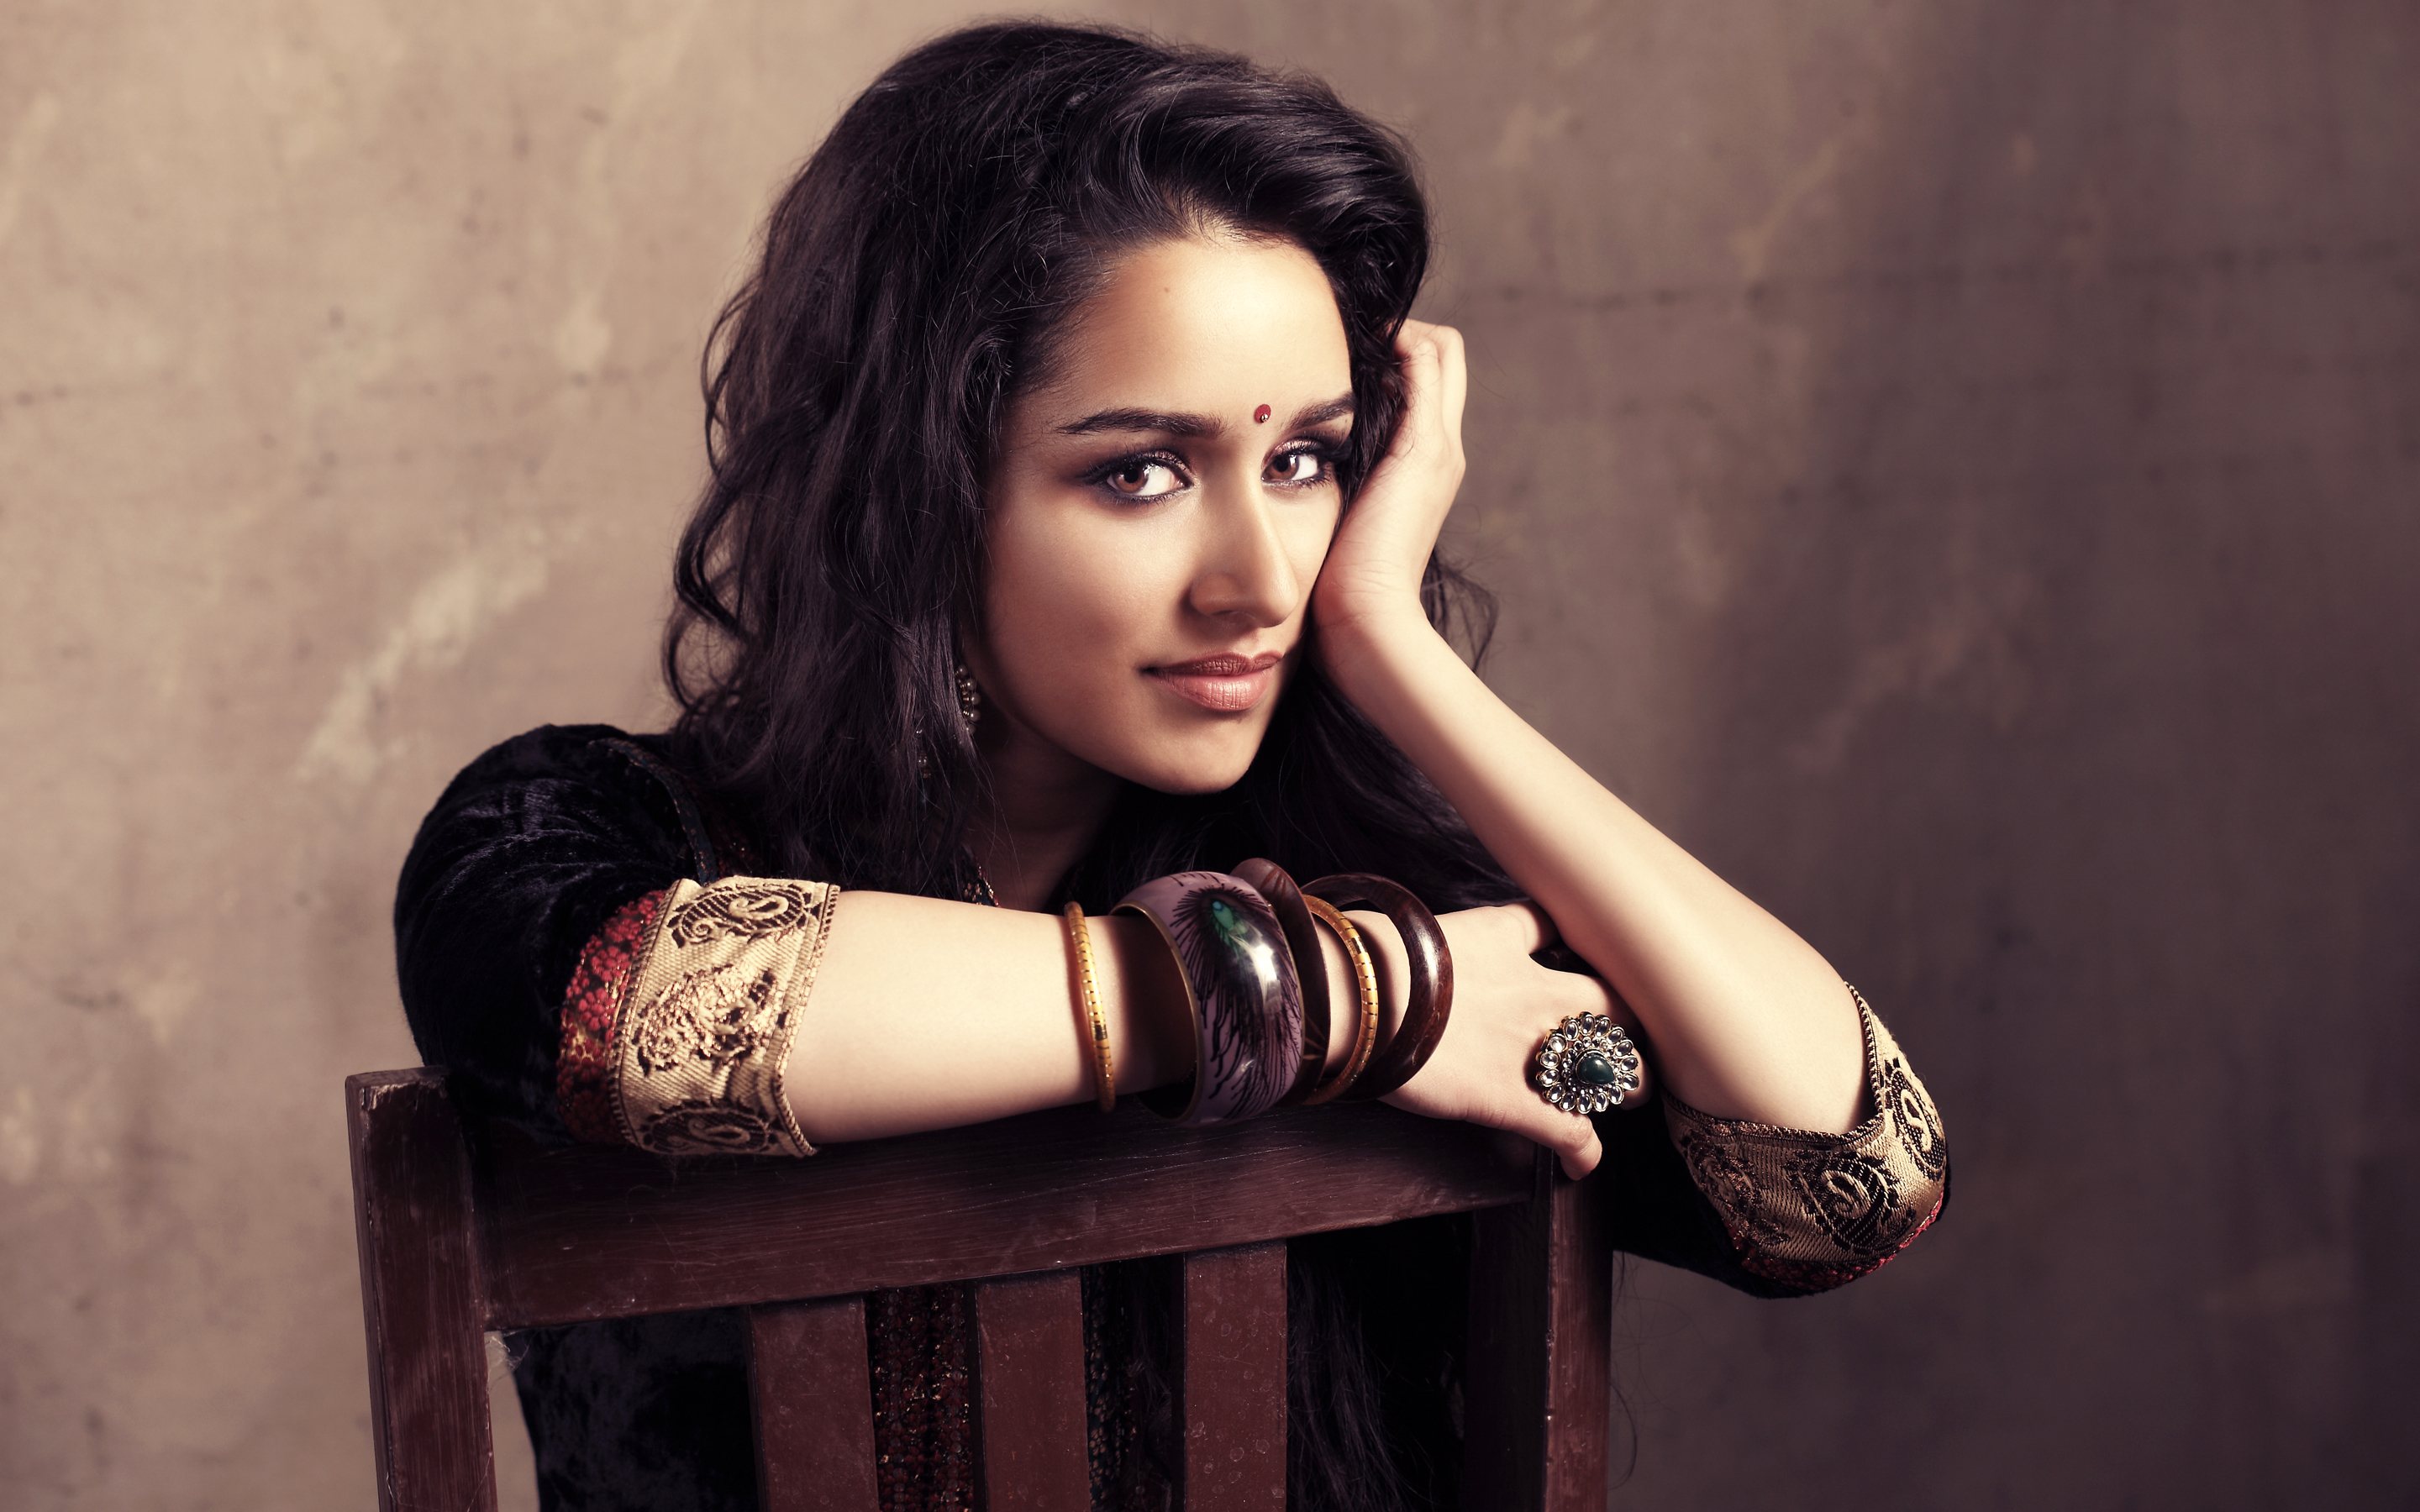 Shraddha Kapoor Wallpaper 1080p 2015 HD 1080p wallpaper 2880x1800